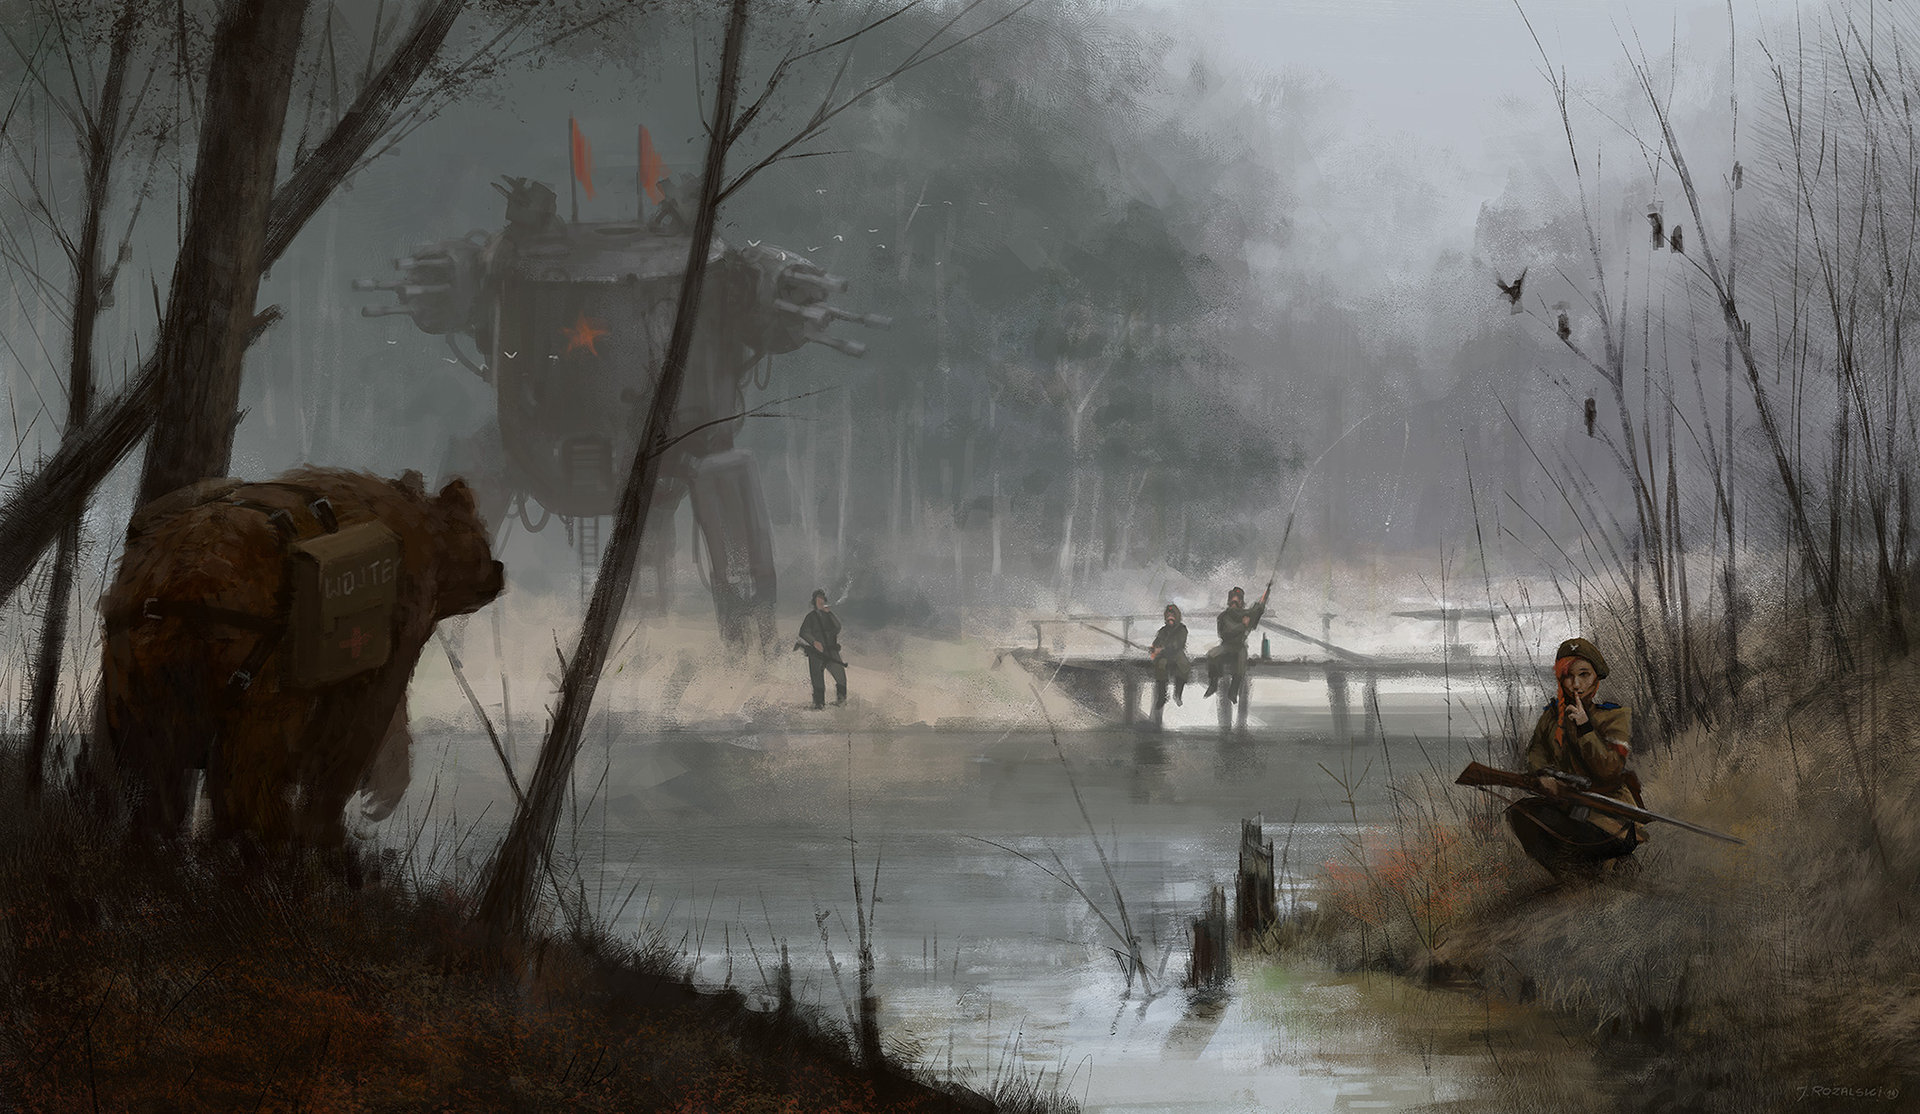 Jakub_Rozalski_-_1920 revolution can wait